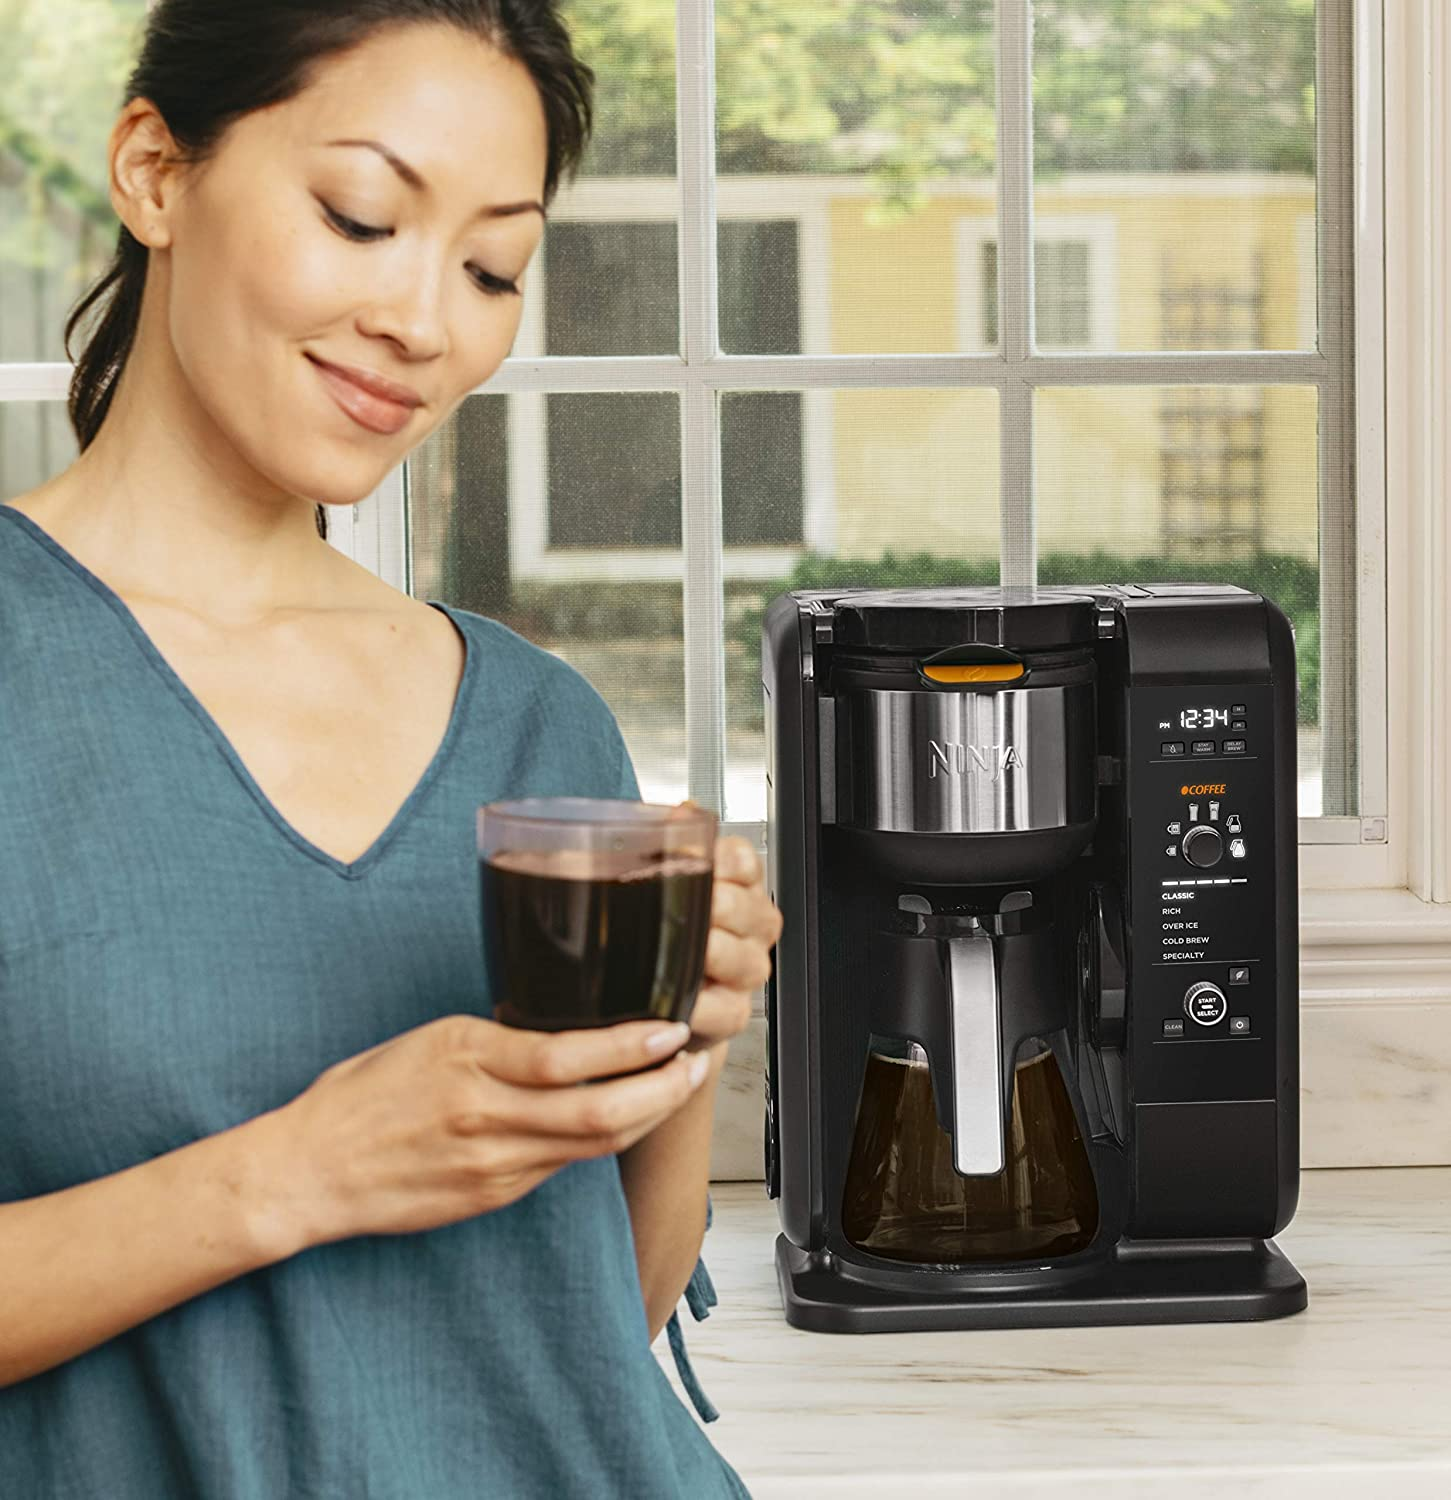 Ninja Hot And Cold Brewed System Auto iQ Tea And Coffee ...